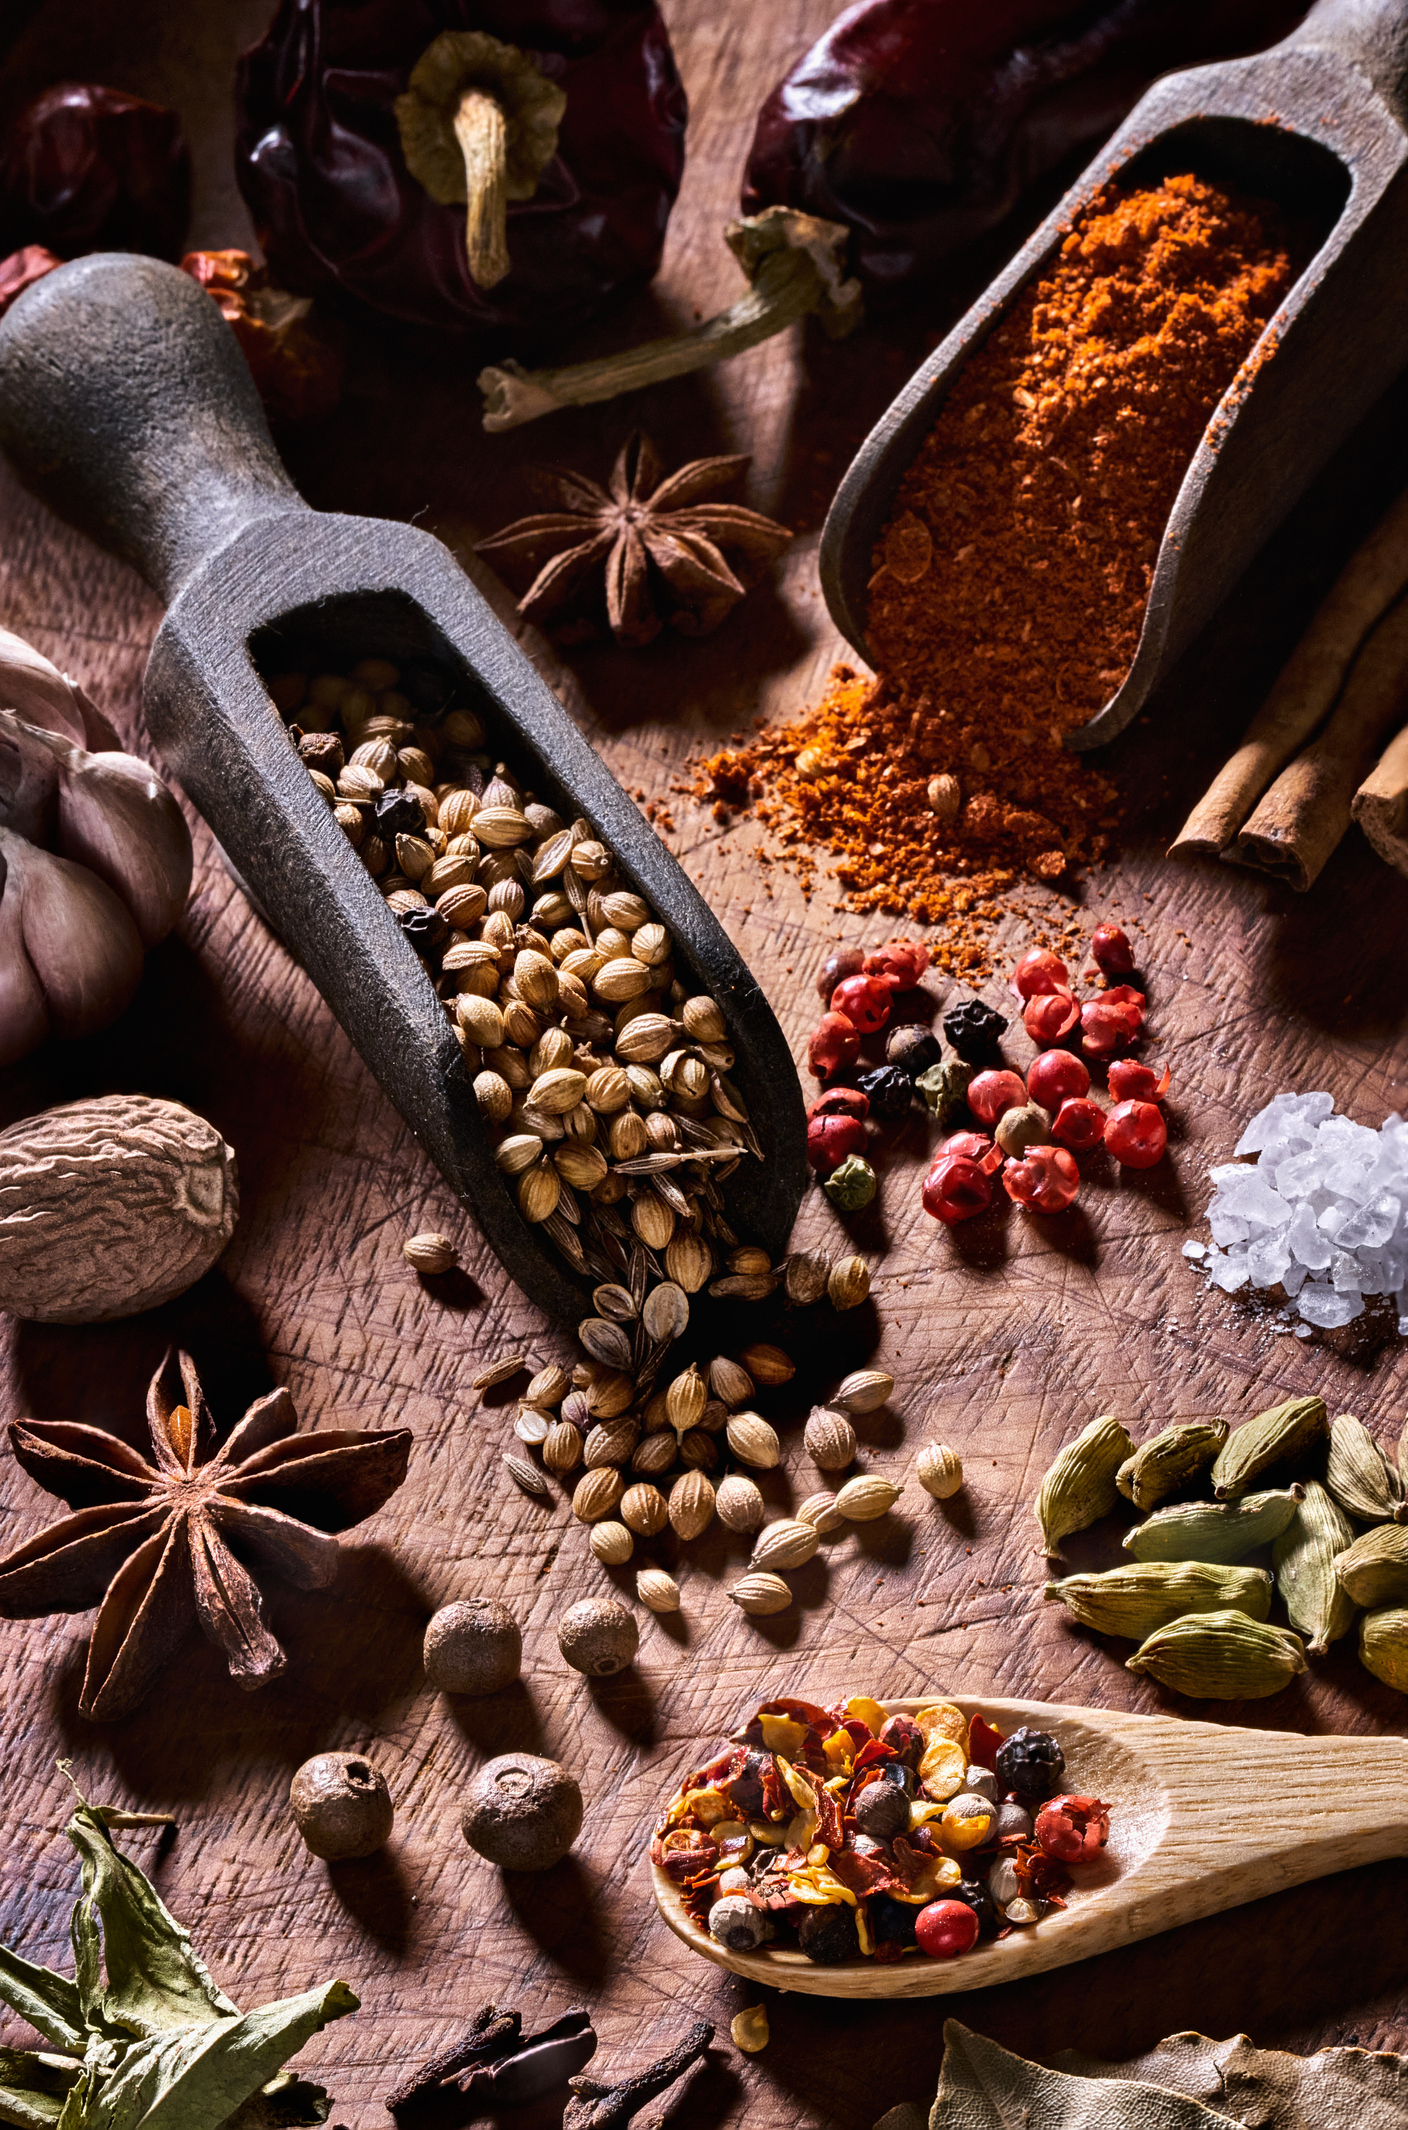 Variety of allspice and herbs on rustic wood table